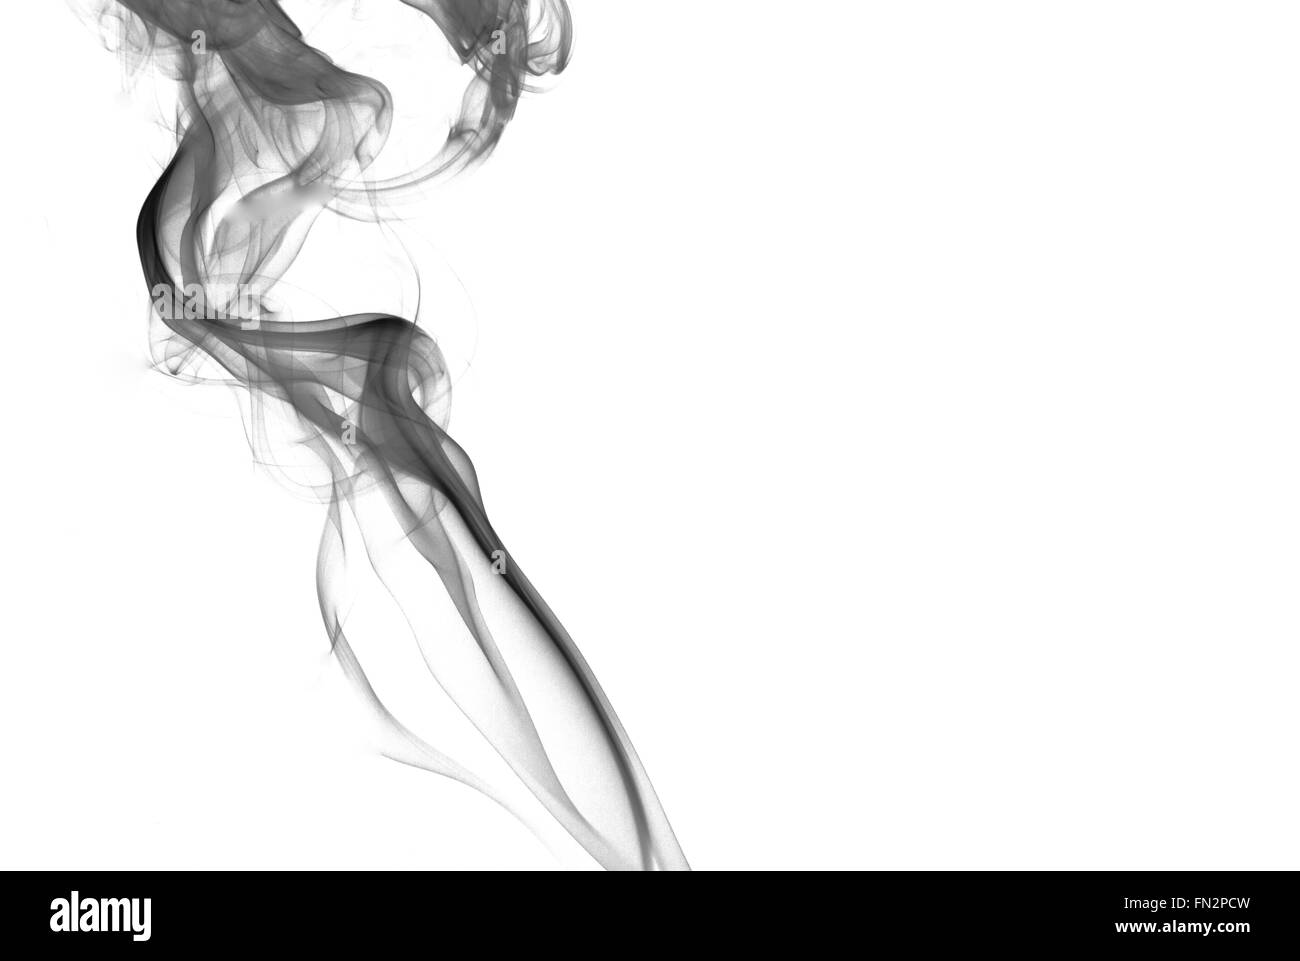 A Thick Streak Of Black Grainy Smoke Isolated On White Background With The Effect